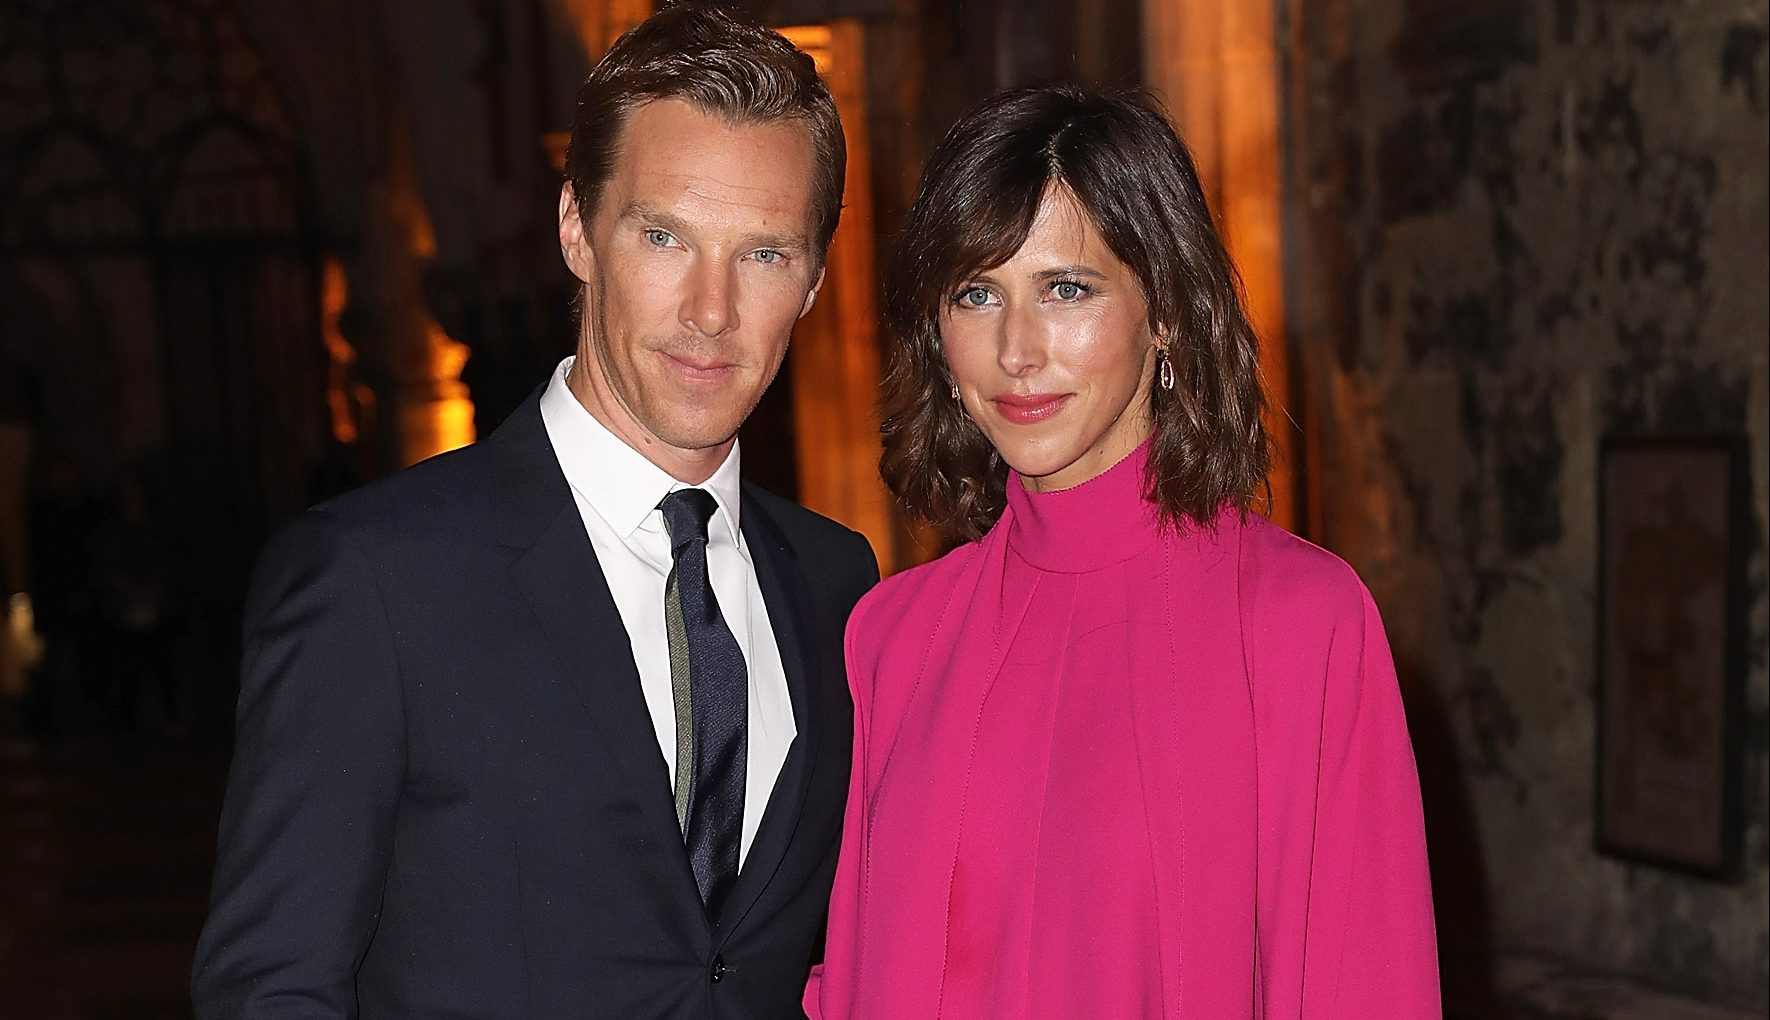 """LONDON, ENGLAND - OCTOBER 24: Benedict Cumberbatch and Sophie Hunter attend the red carpet launch event for """"Doctor Strange"""" at Westminster Abbey on October 24, 2016 in London, United Kingdom. (Photo by David M. Benett/Dave Benett/WireImage)"""